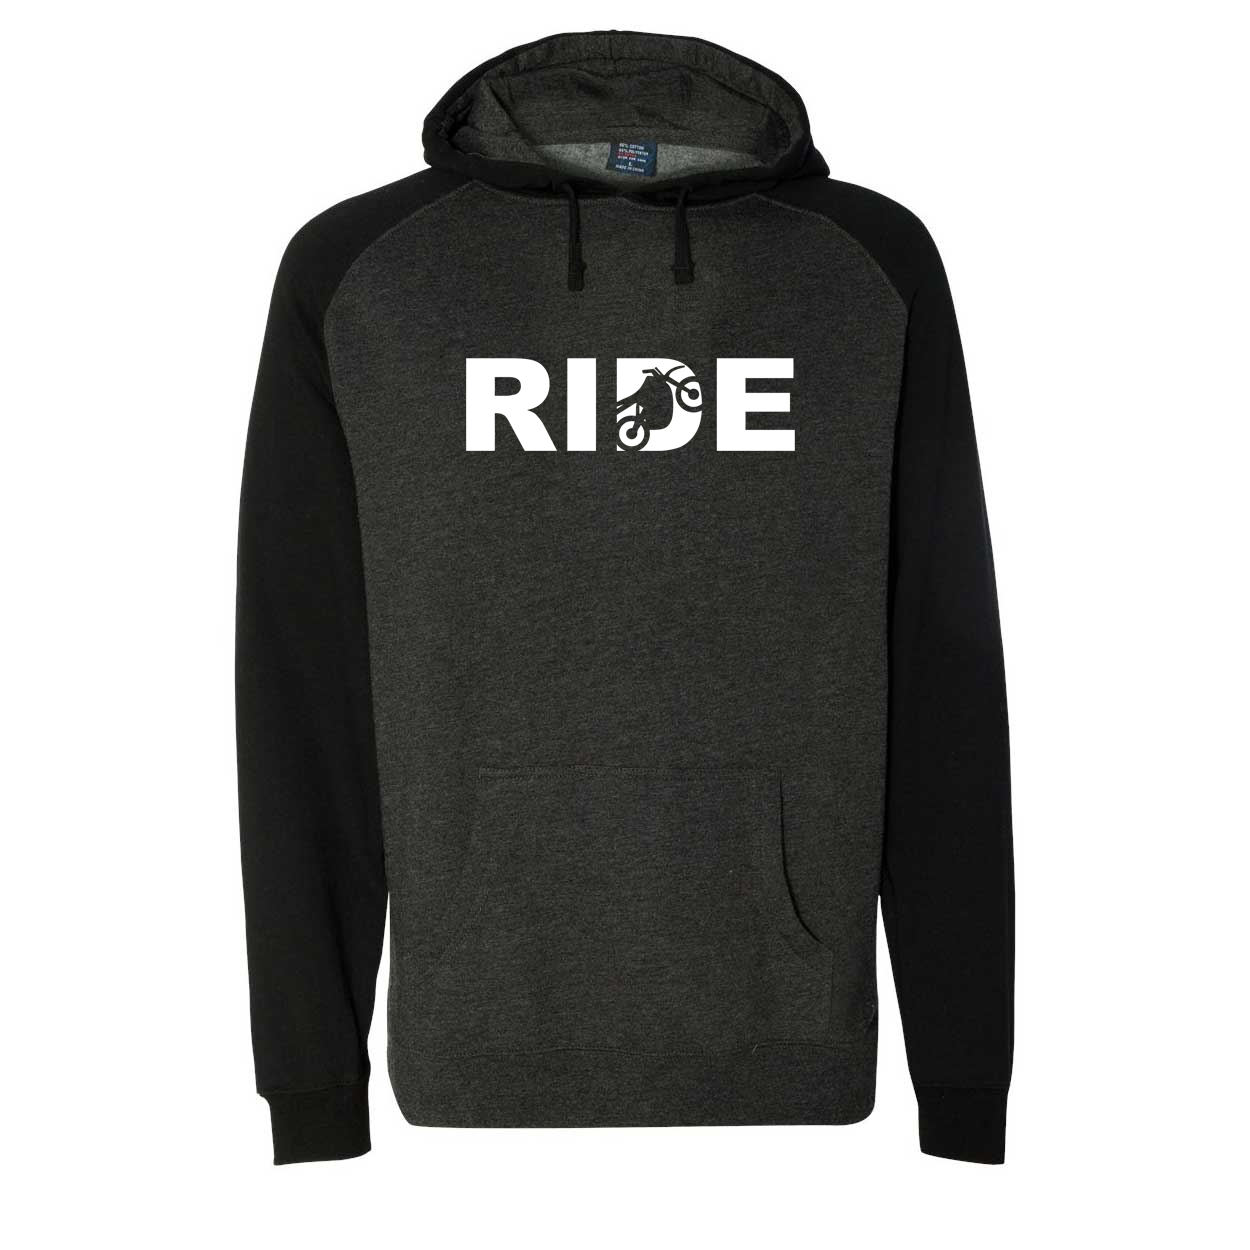 Ride Moto Logo Classic Raglan Hooded Pullover Sweatshirt Charcoal/Heather Black (White Logo)